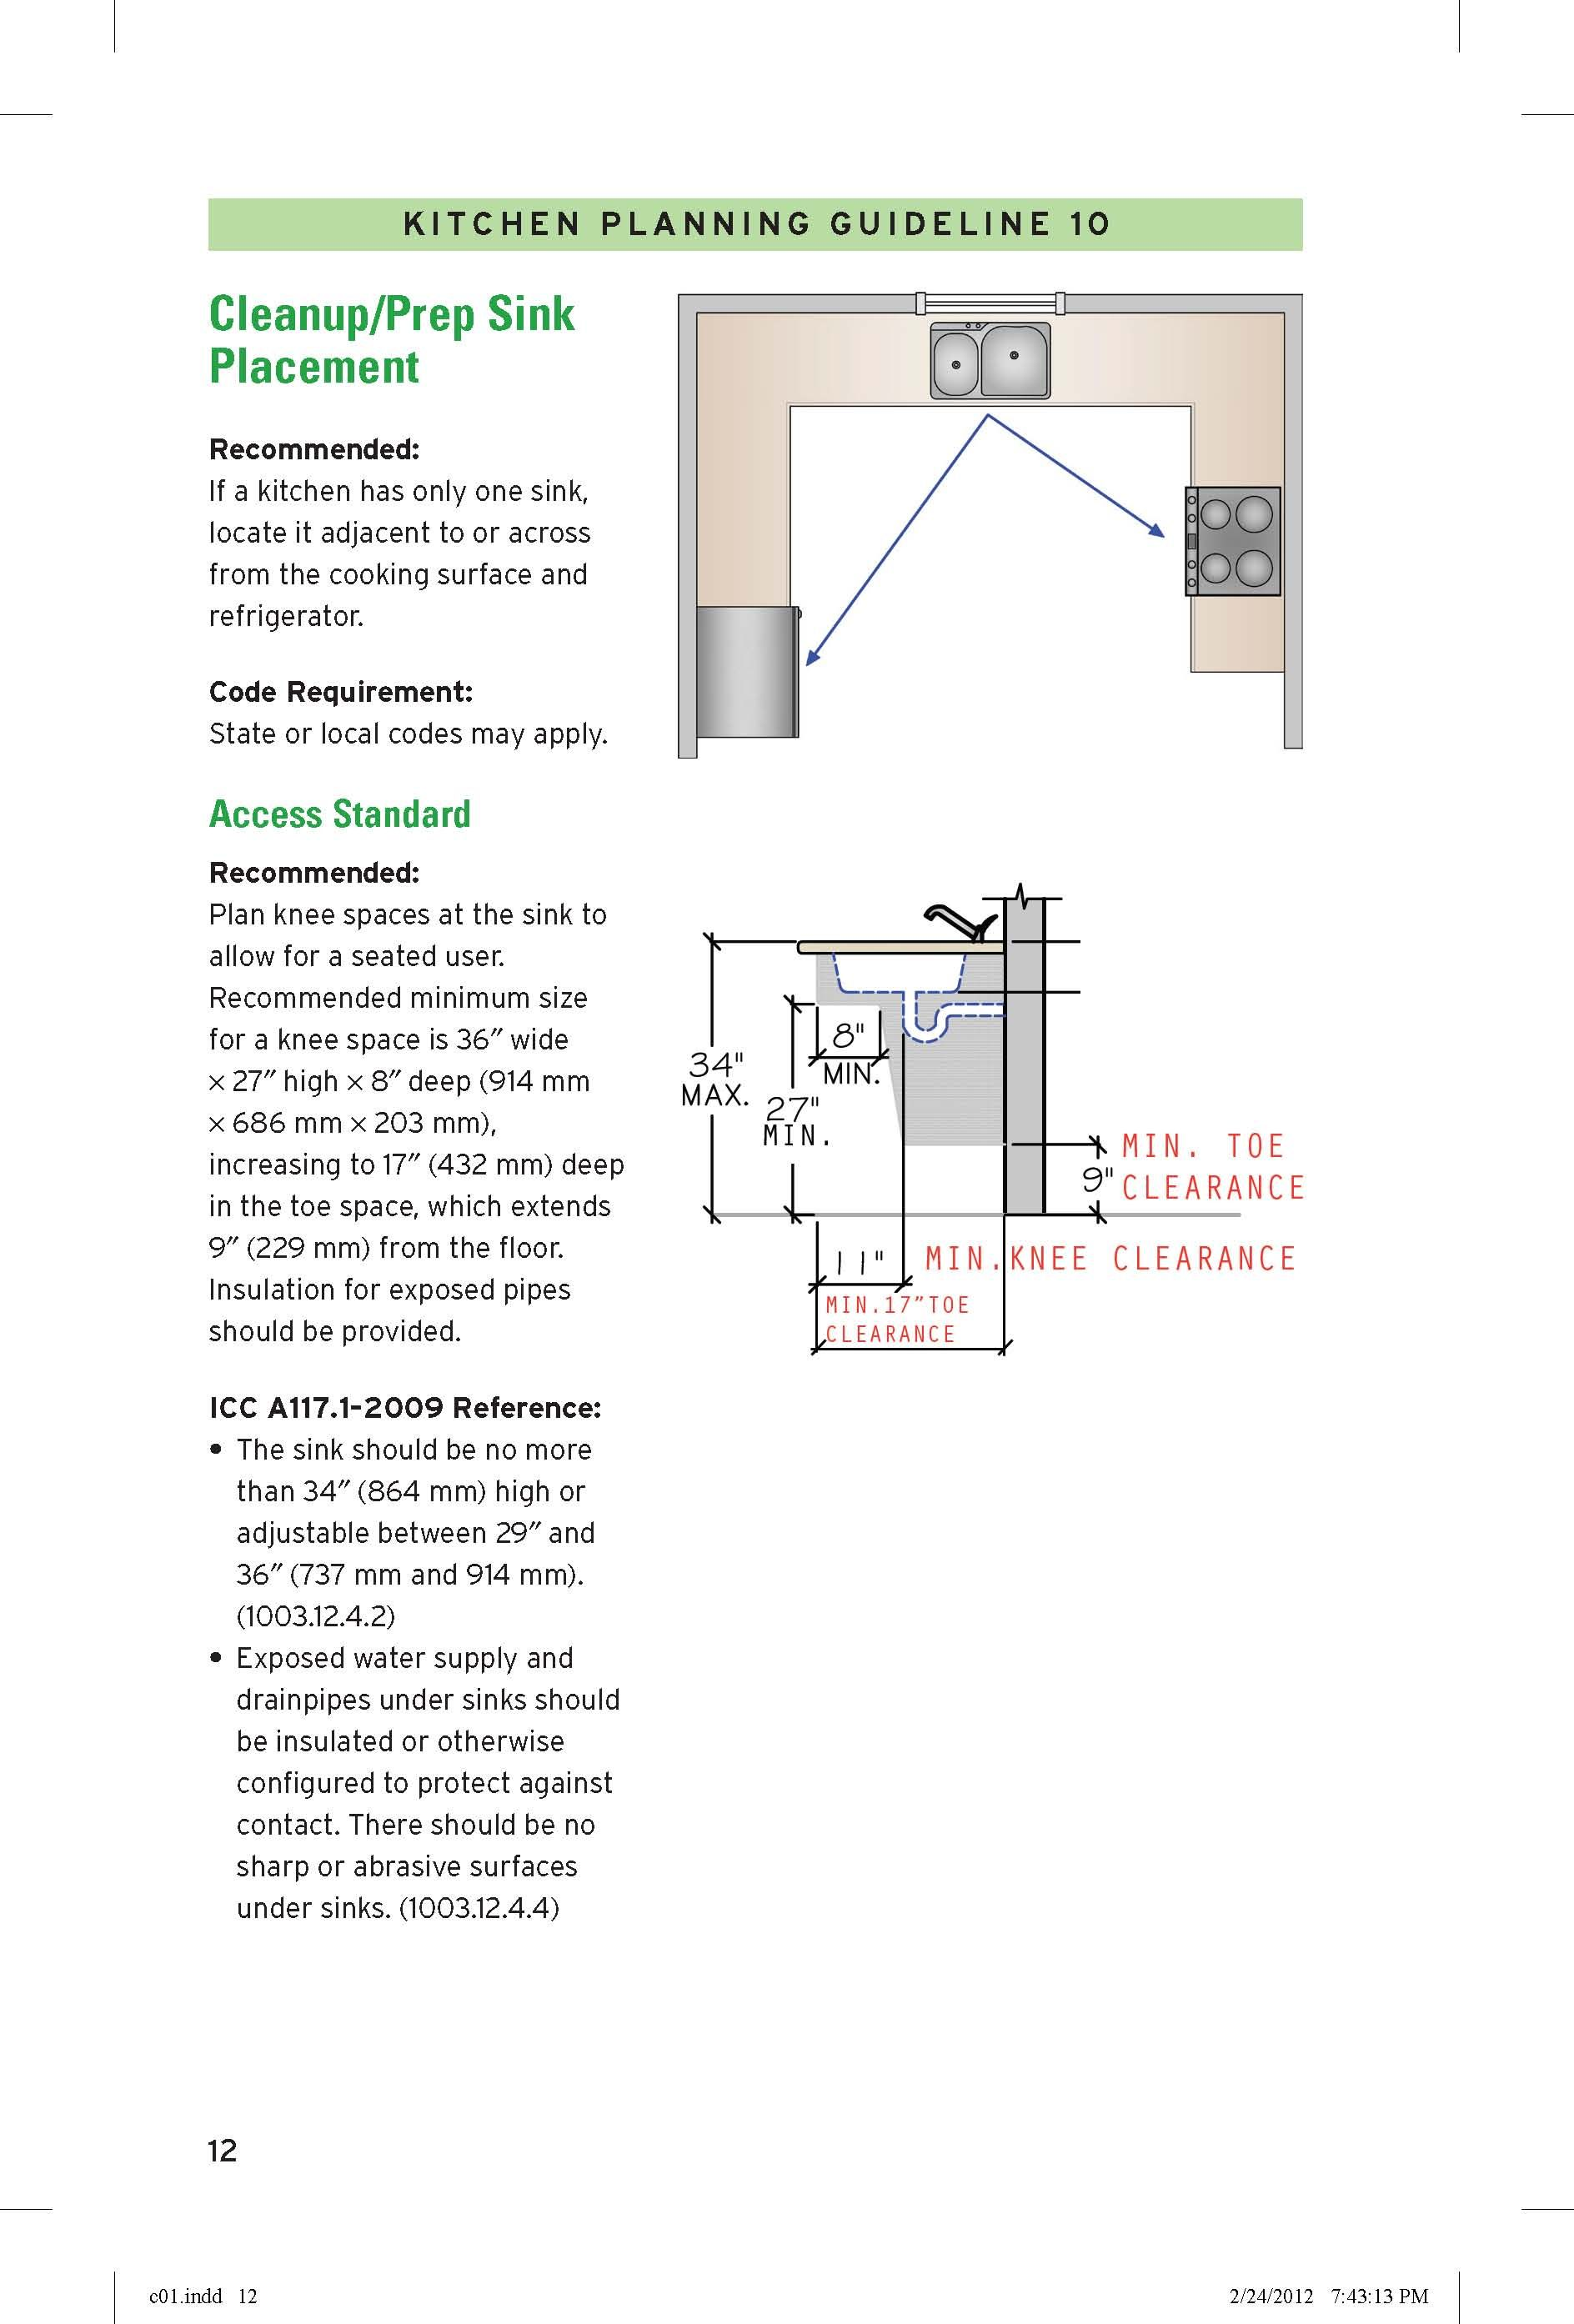 Cleanup Prep Sink Placement Prep Sink Kitchen Plans Guidelines